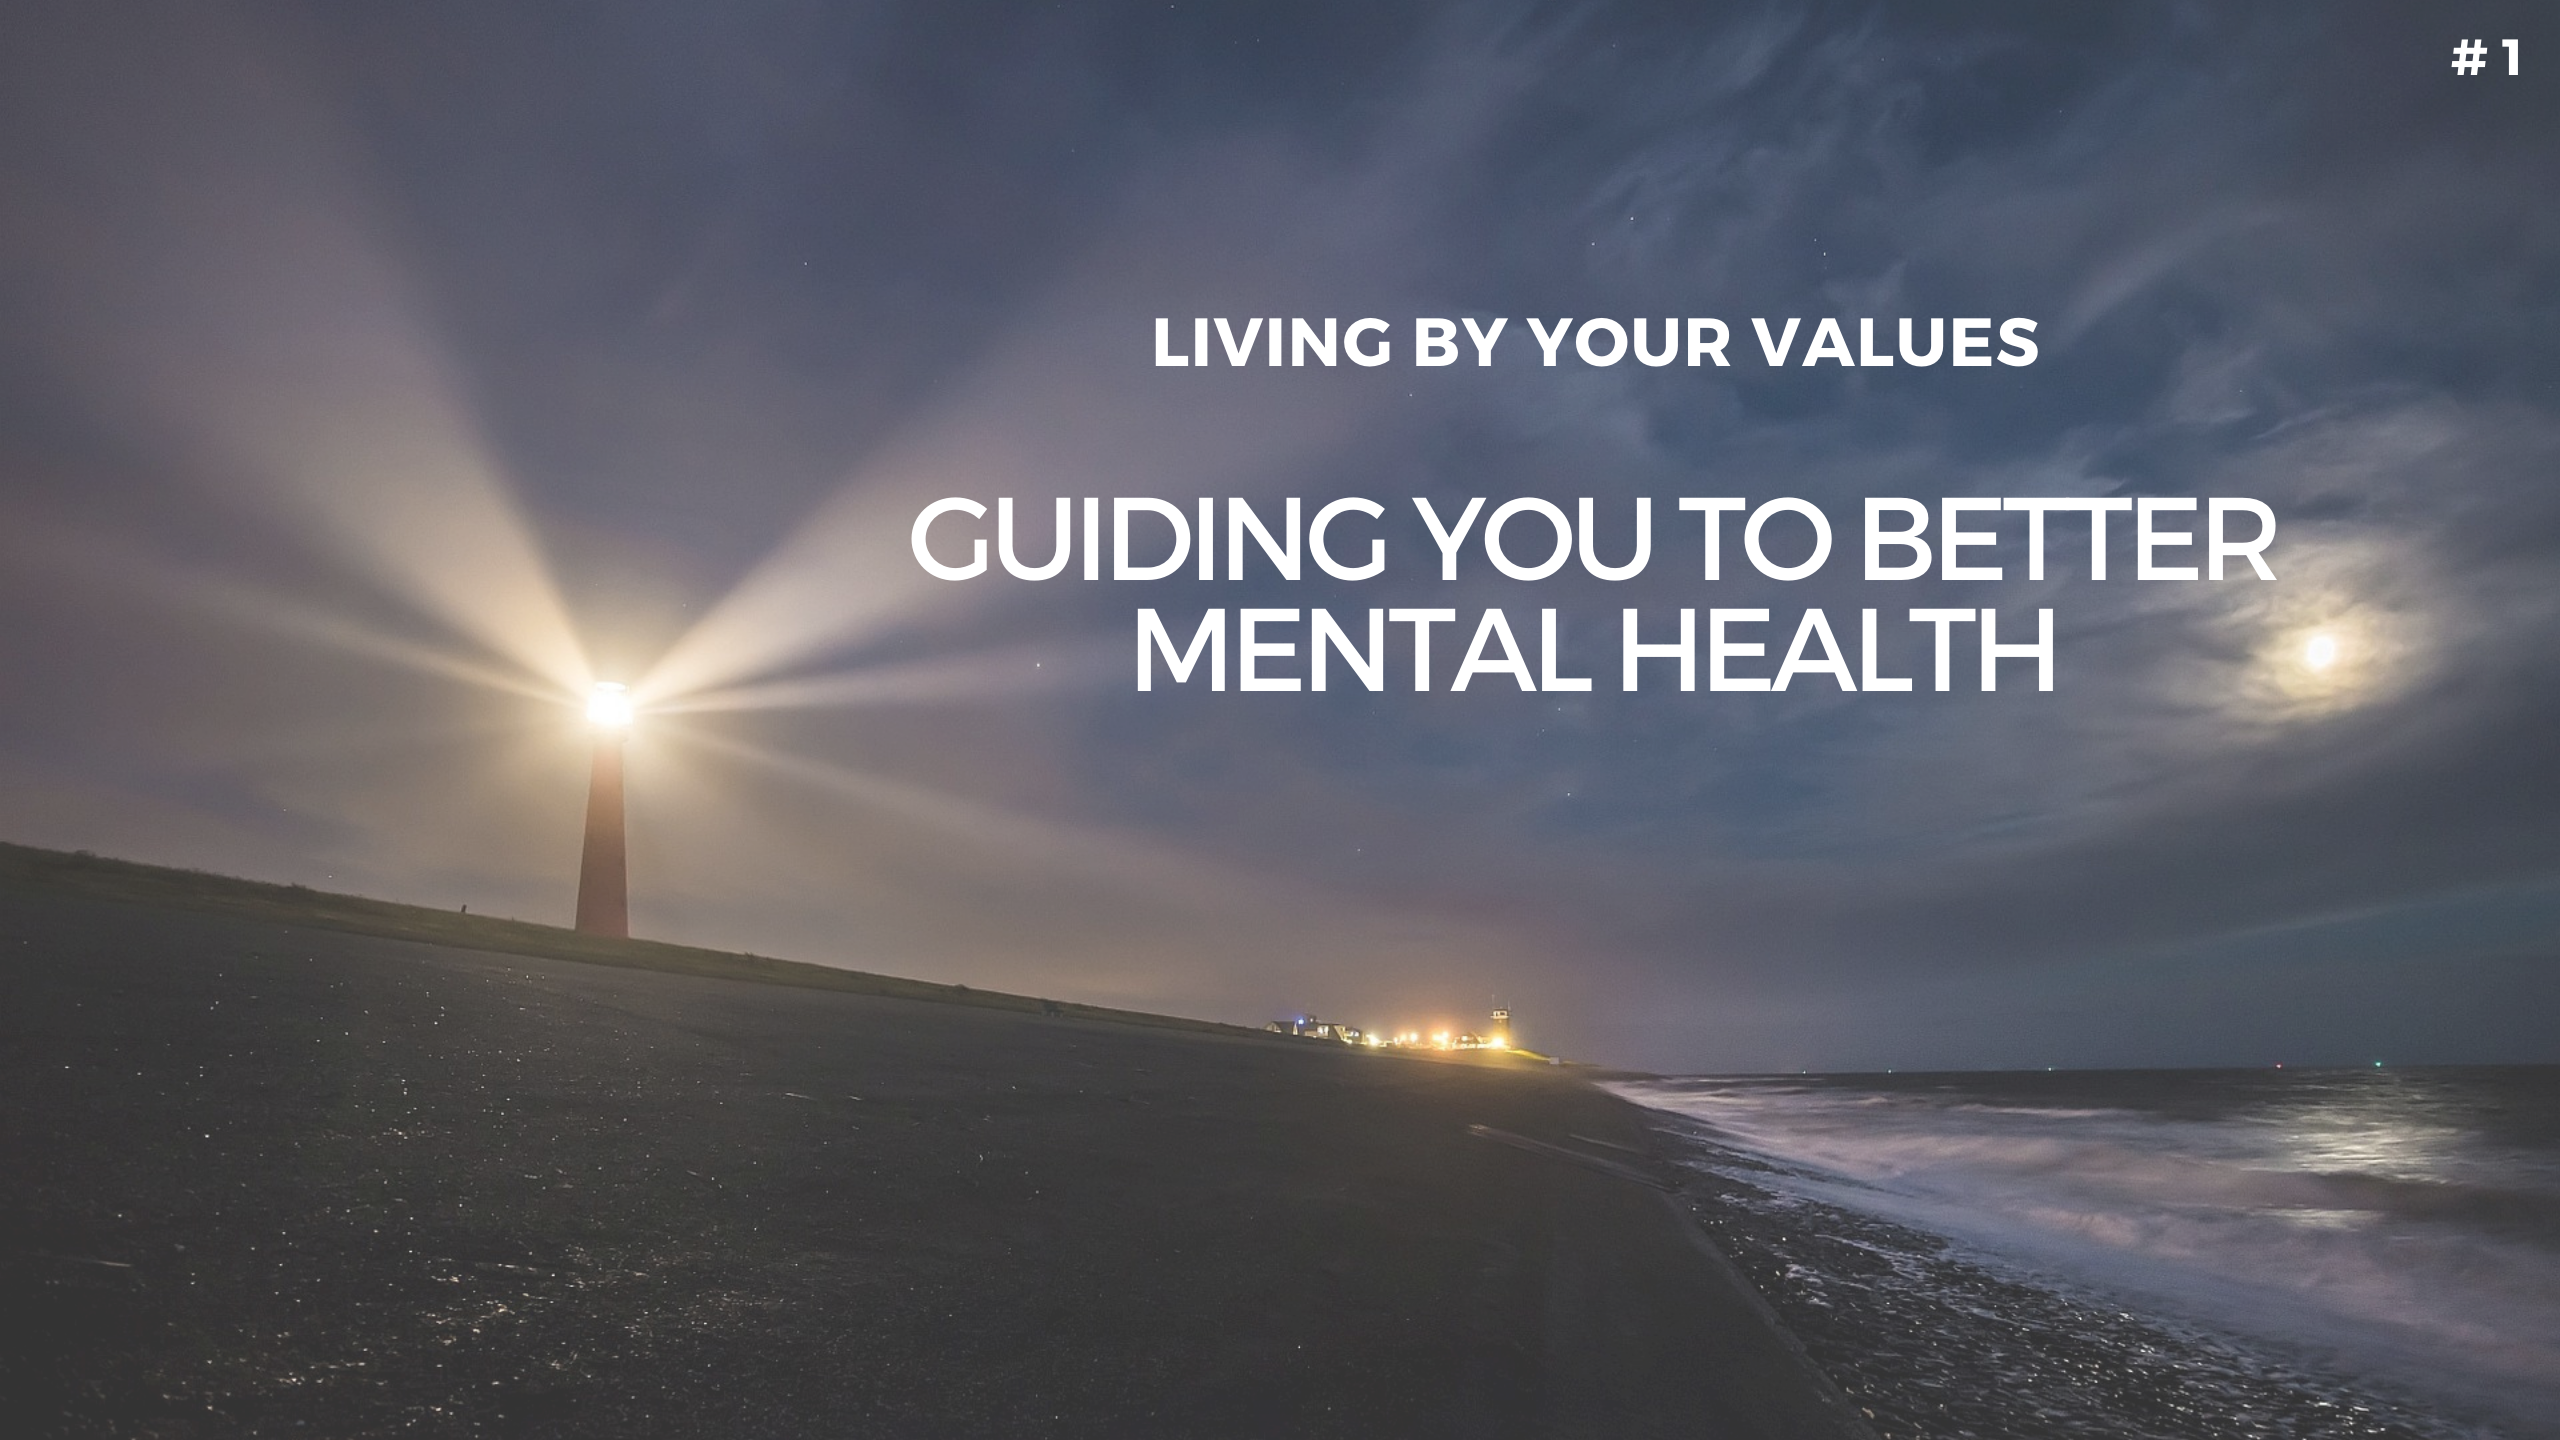 Values for Mental Health